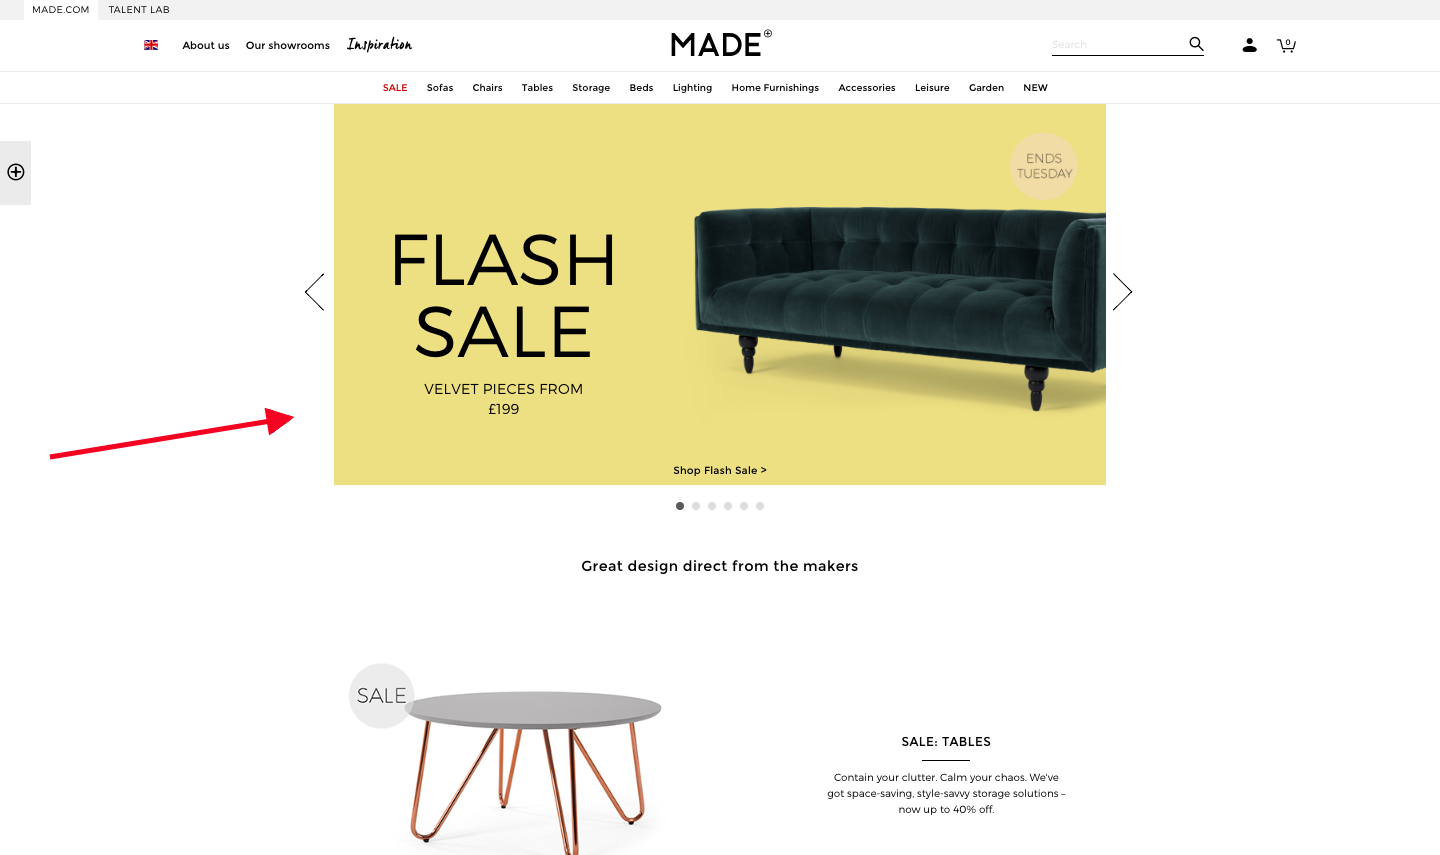 Made uses color to highlight their flash sale